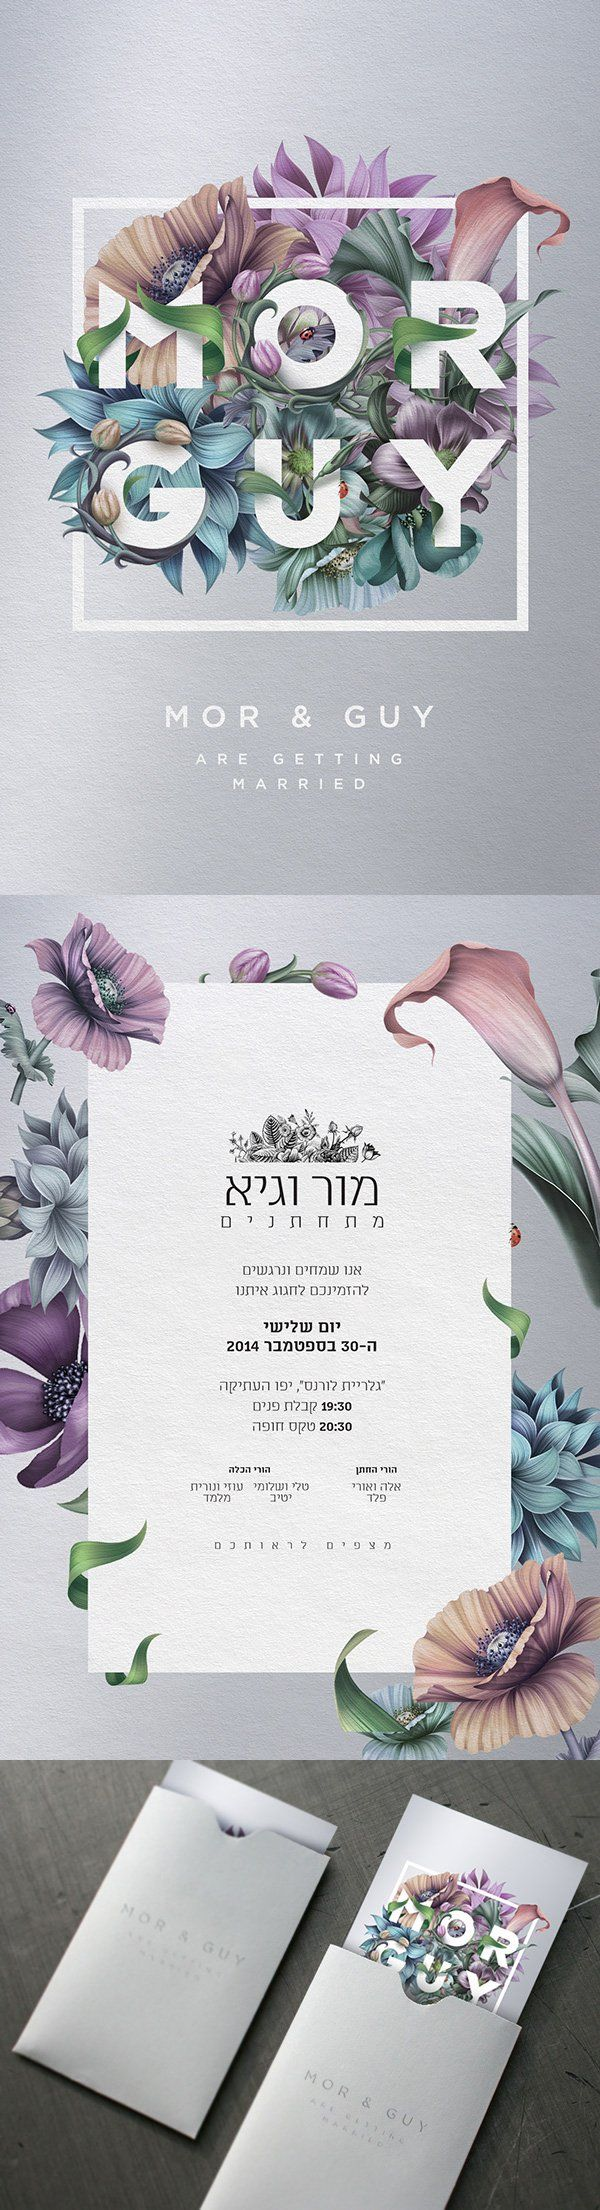 Wedding invitations don't have to be boring. This invitation pairs beautiful floral illustration with simple, block-like text. The way the flora interacts with the text is interesting, as if the text is growing into it.